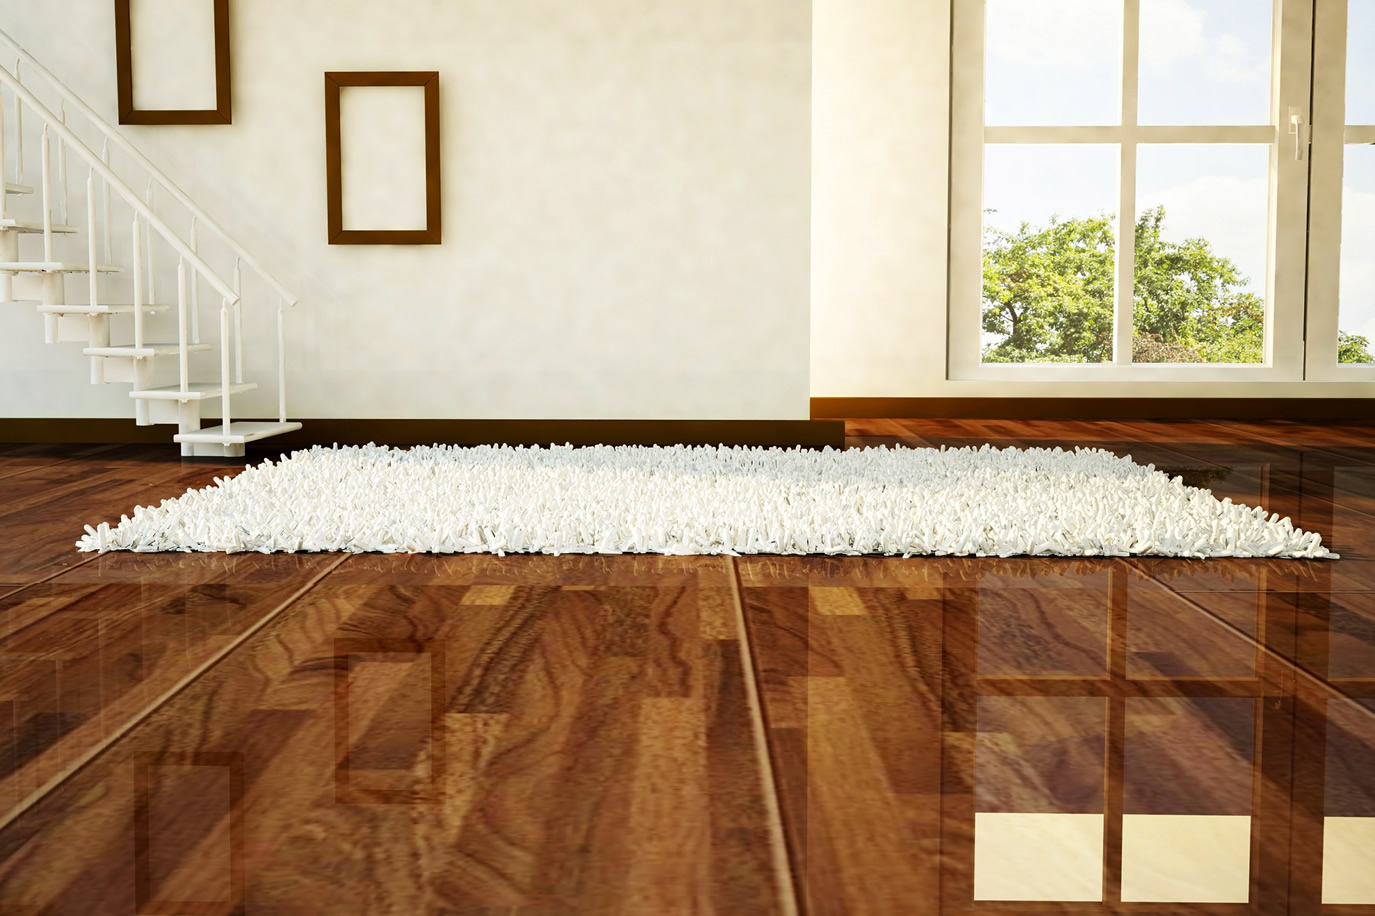 Care For Hardwood Floors popular of cleaning hardwood floors with vinegar this homemade floor cleaner doubles as the best all purpose cleaner Wood Floor Cleaning